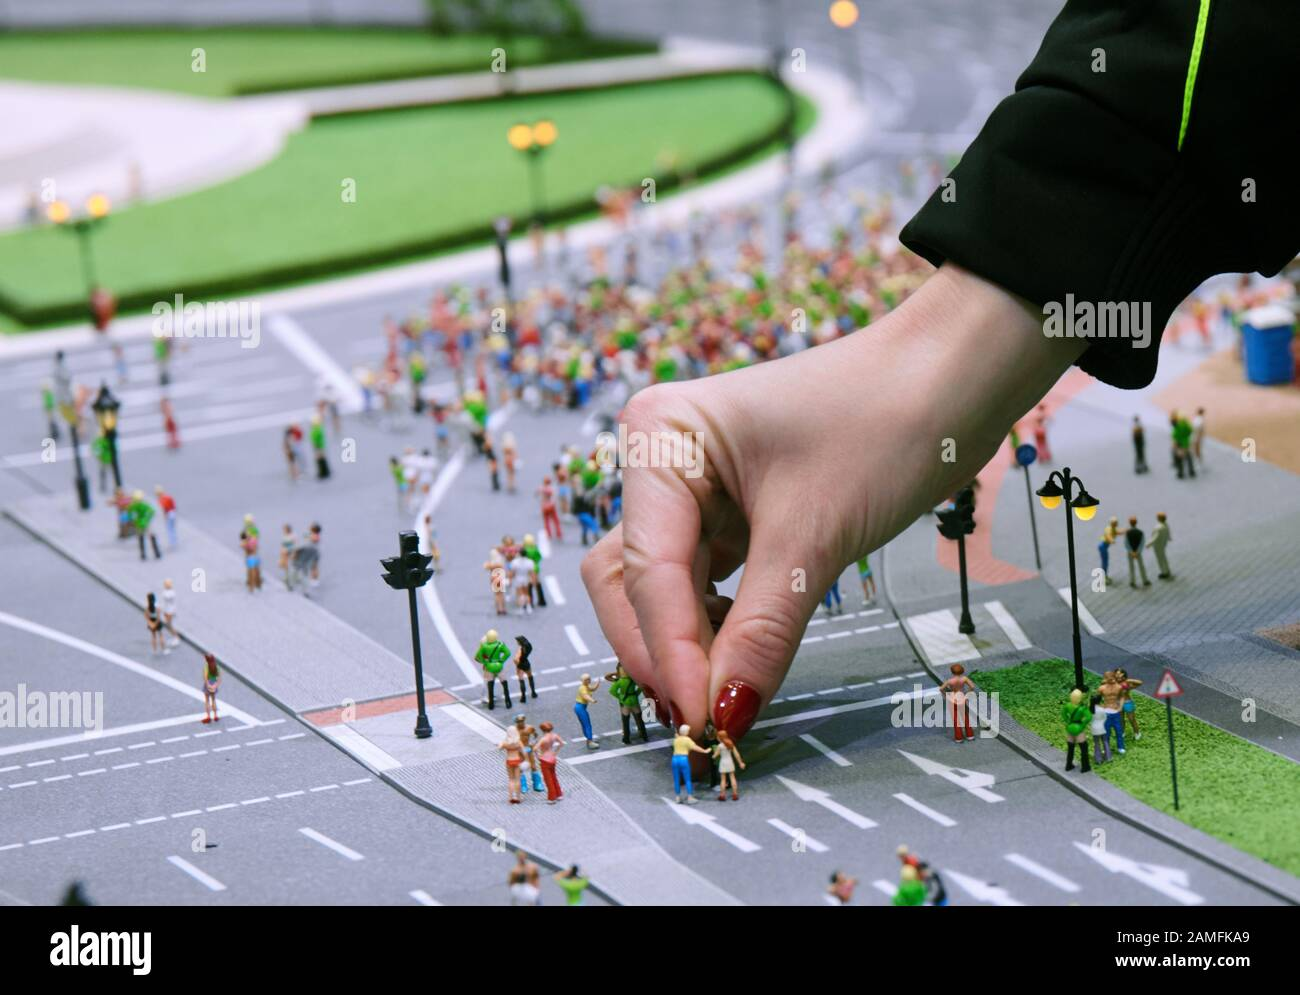 Berlin Germany 13th Jan 2020 A Young Woman Places A Miniature Figure In A Model Of The Loveparade Loveparade Founder Dr Motte Presented His New Project In A Press Conference With The